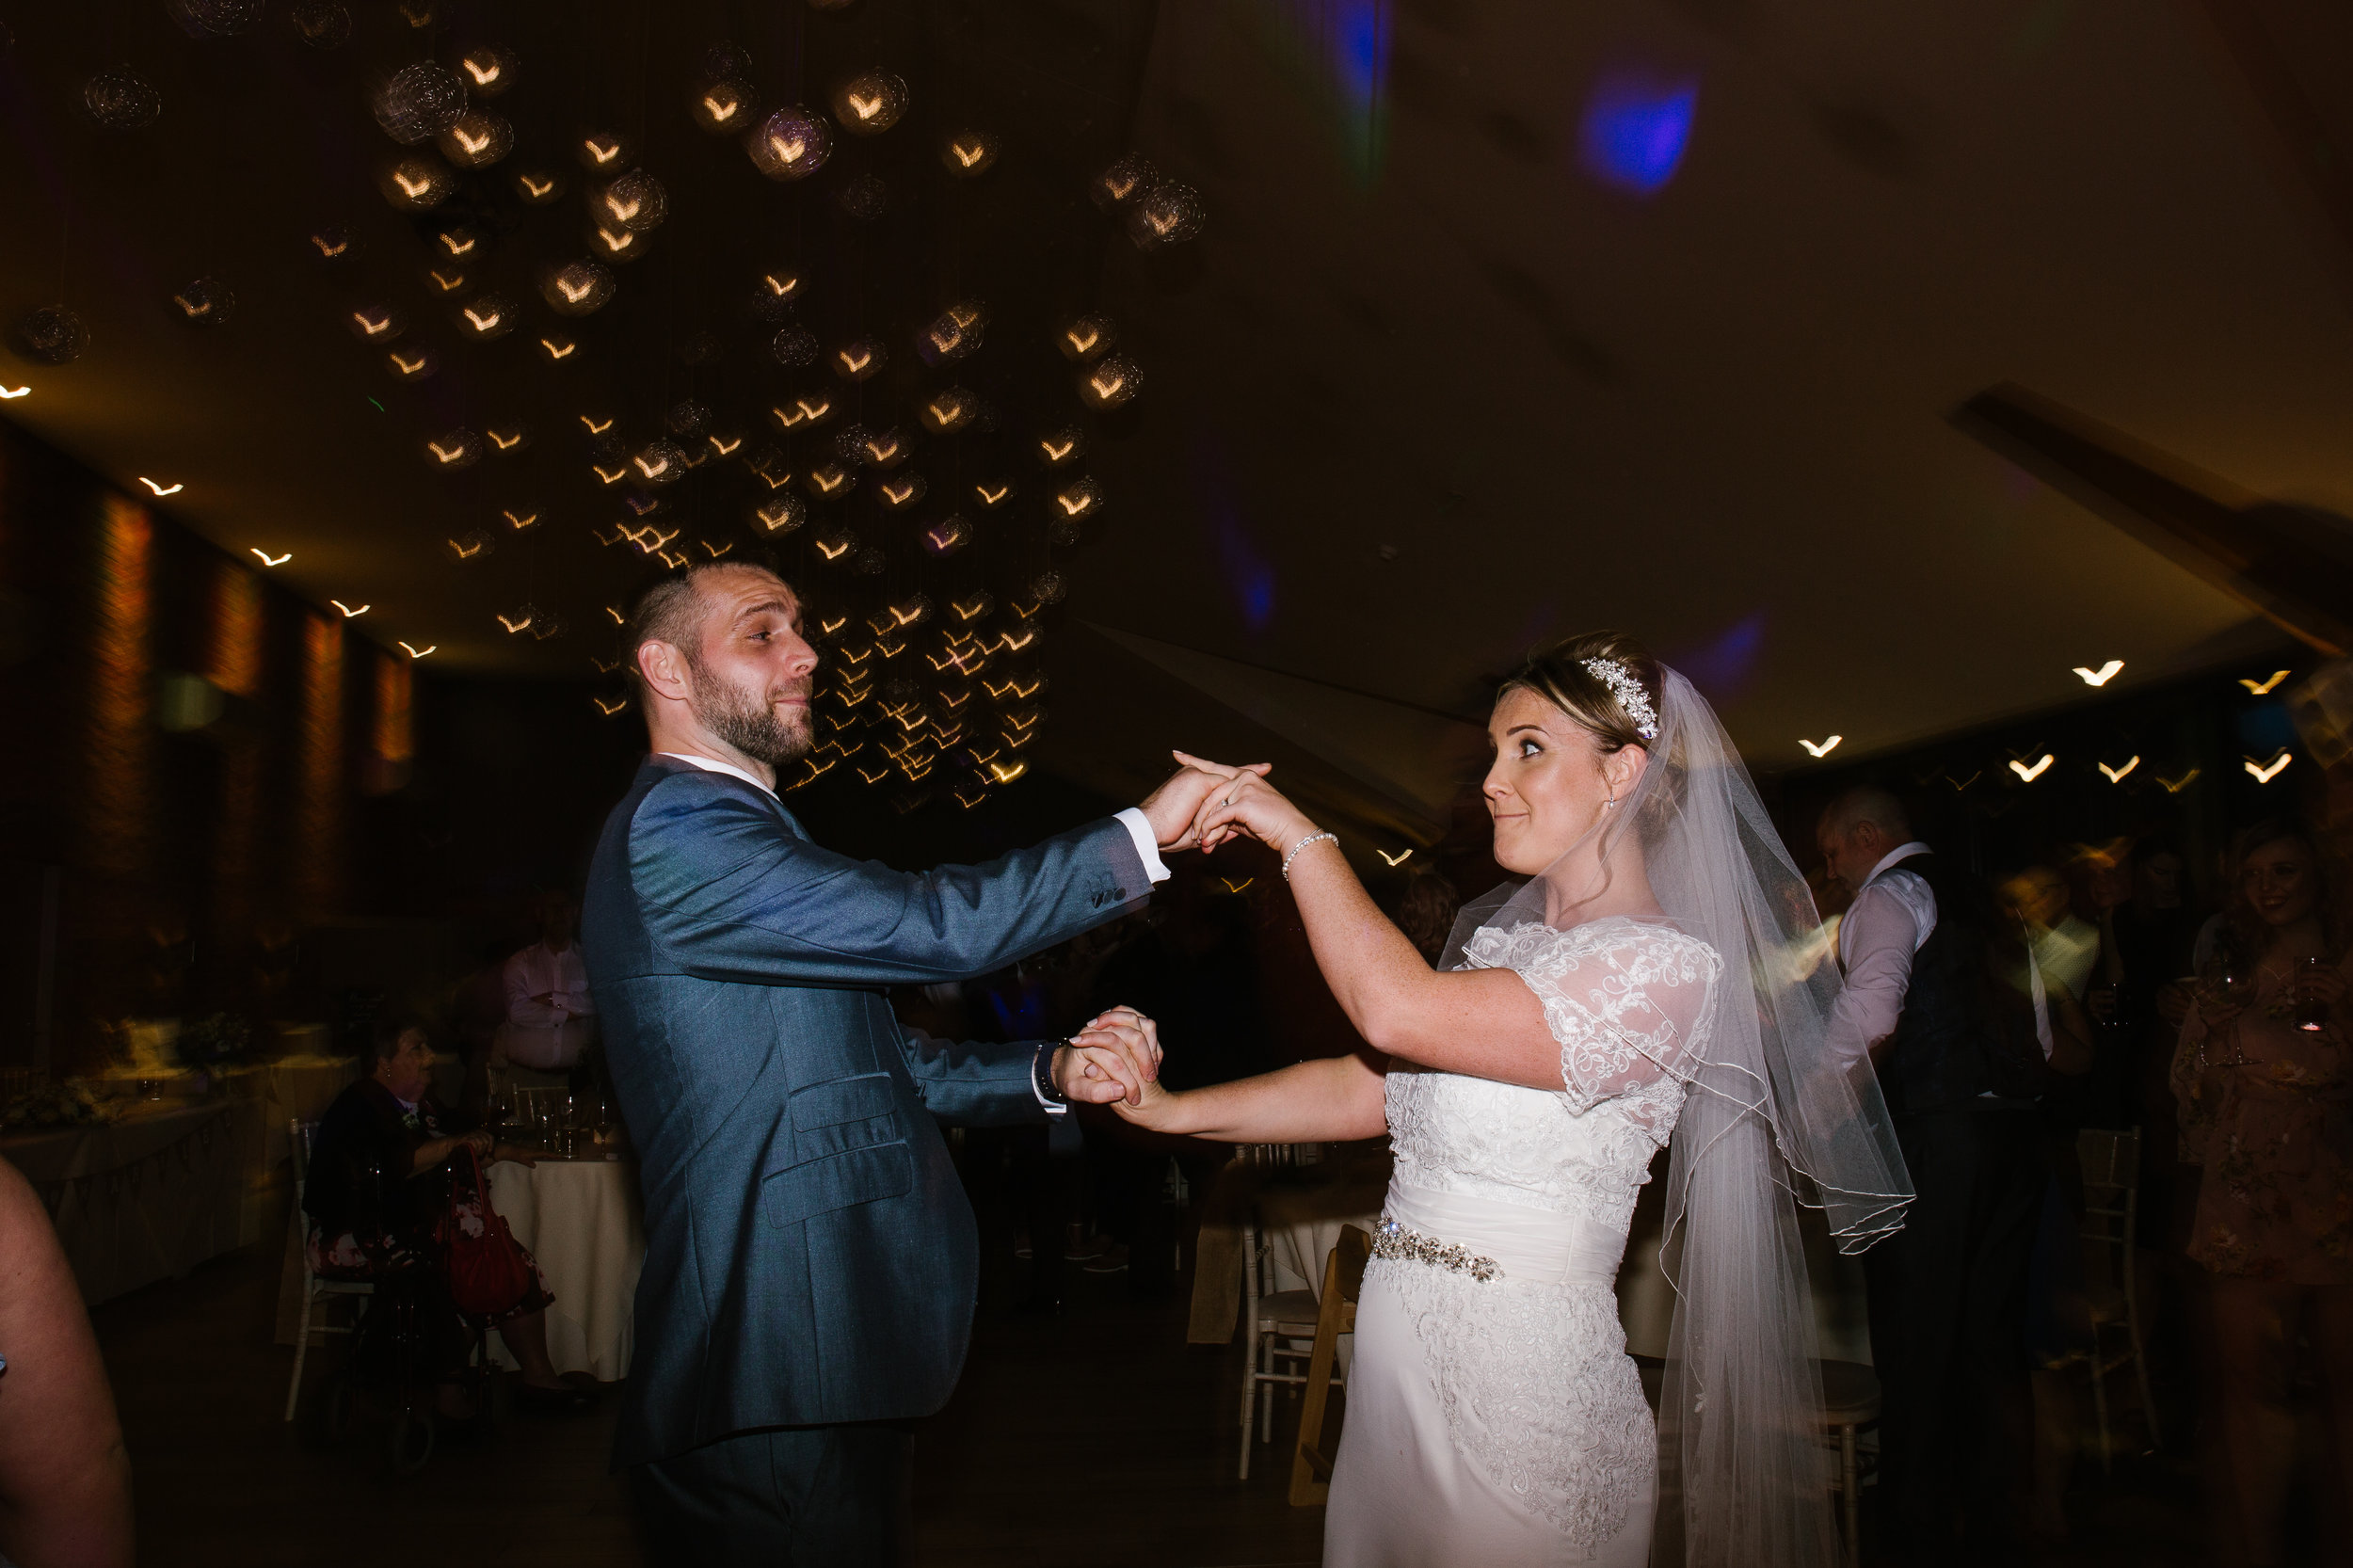 newlyweds dancing together at their fun wedding at aston marina